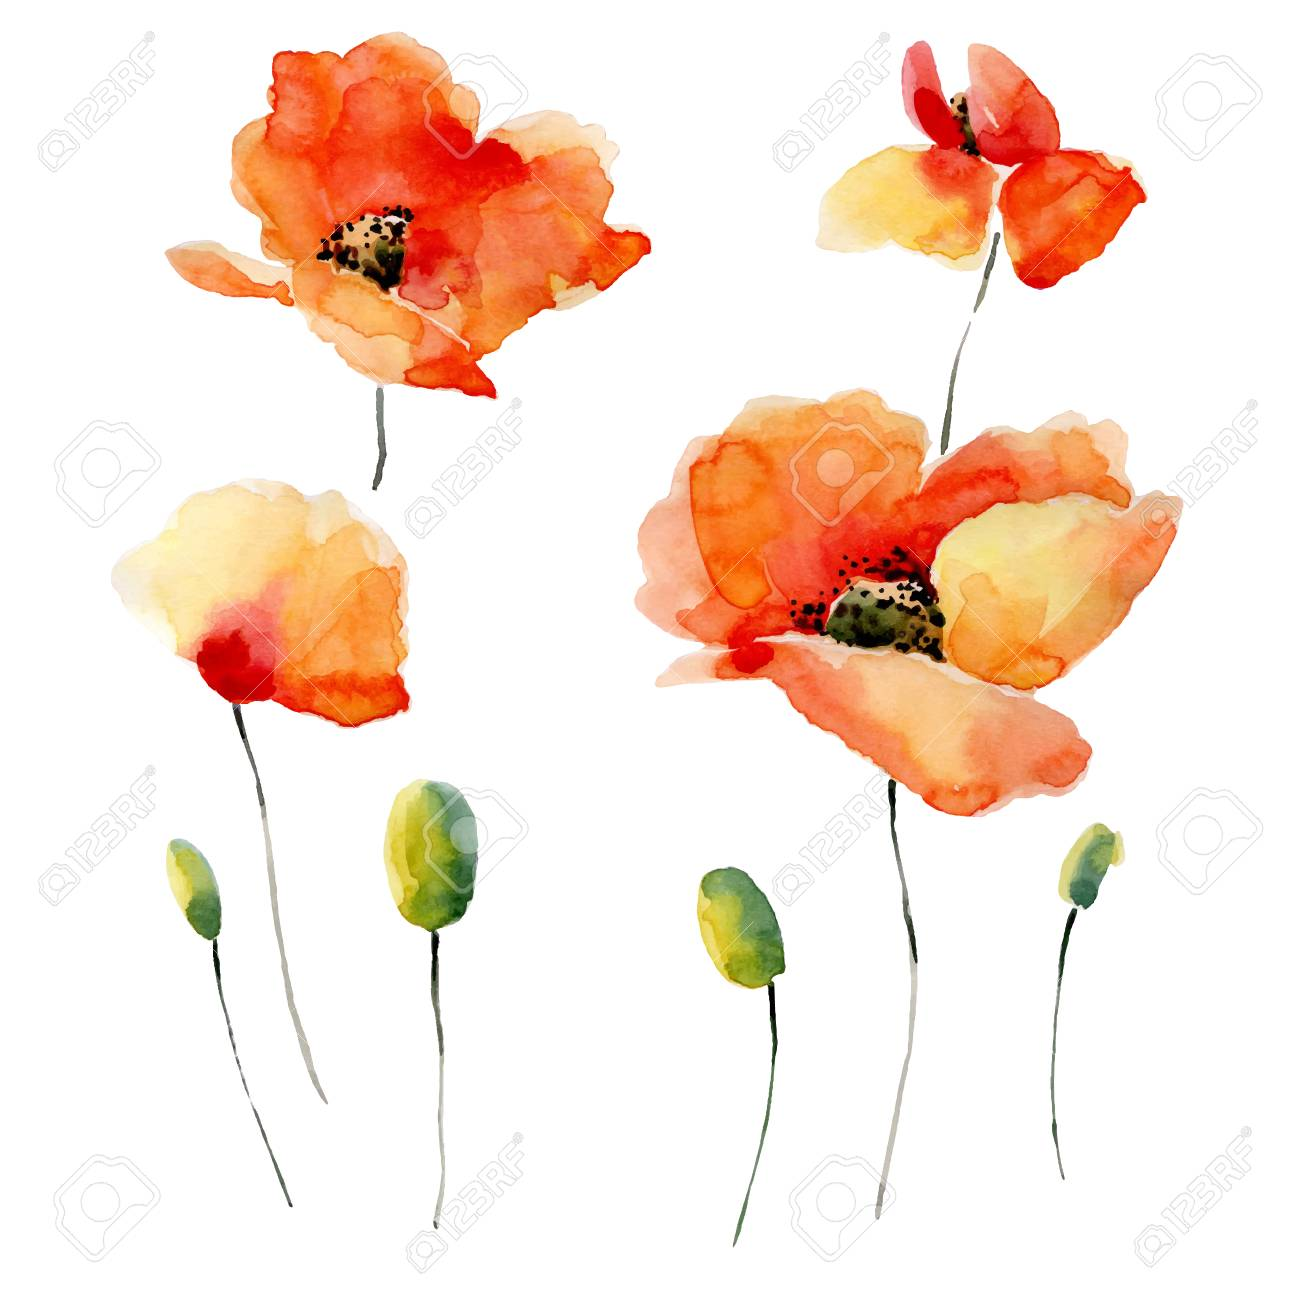 Watercolor illustration of a poppy on a white background. Background for your design and decor. - 51894810